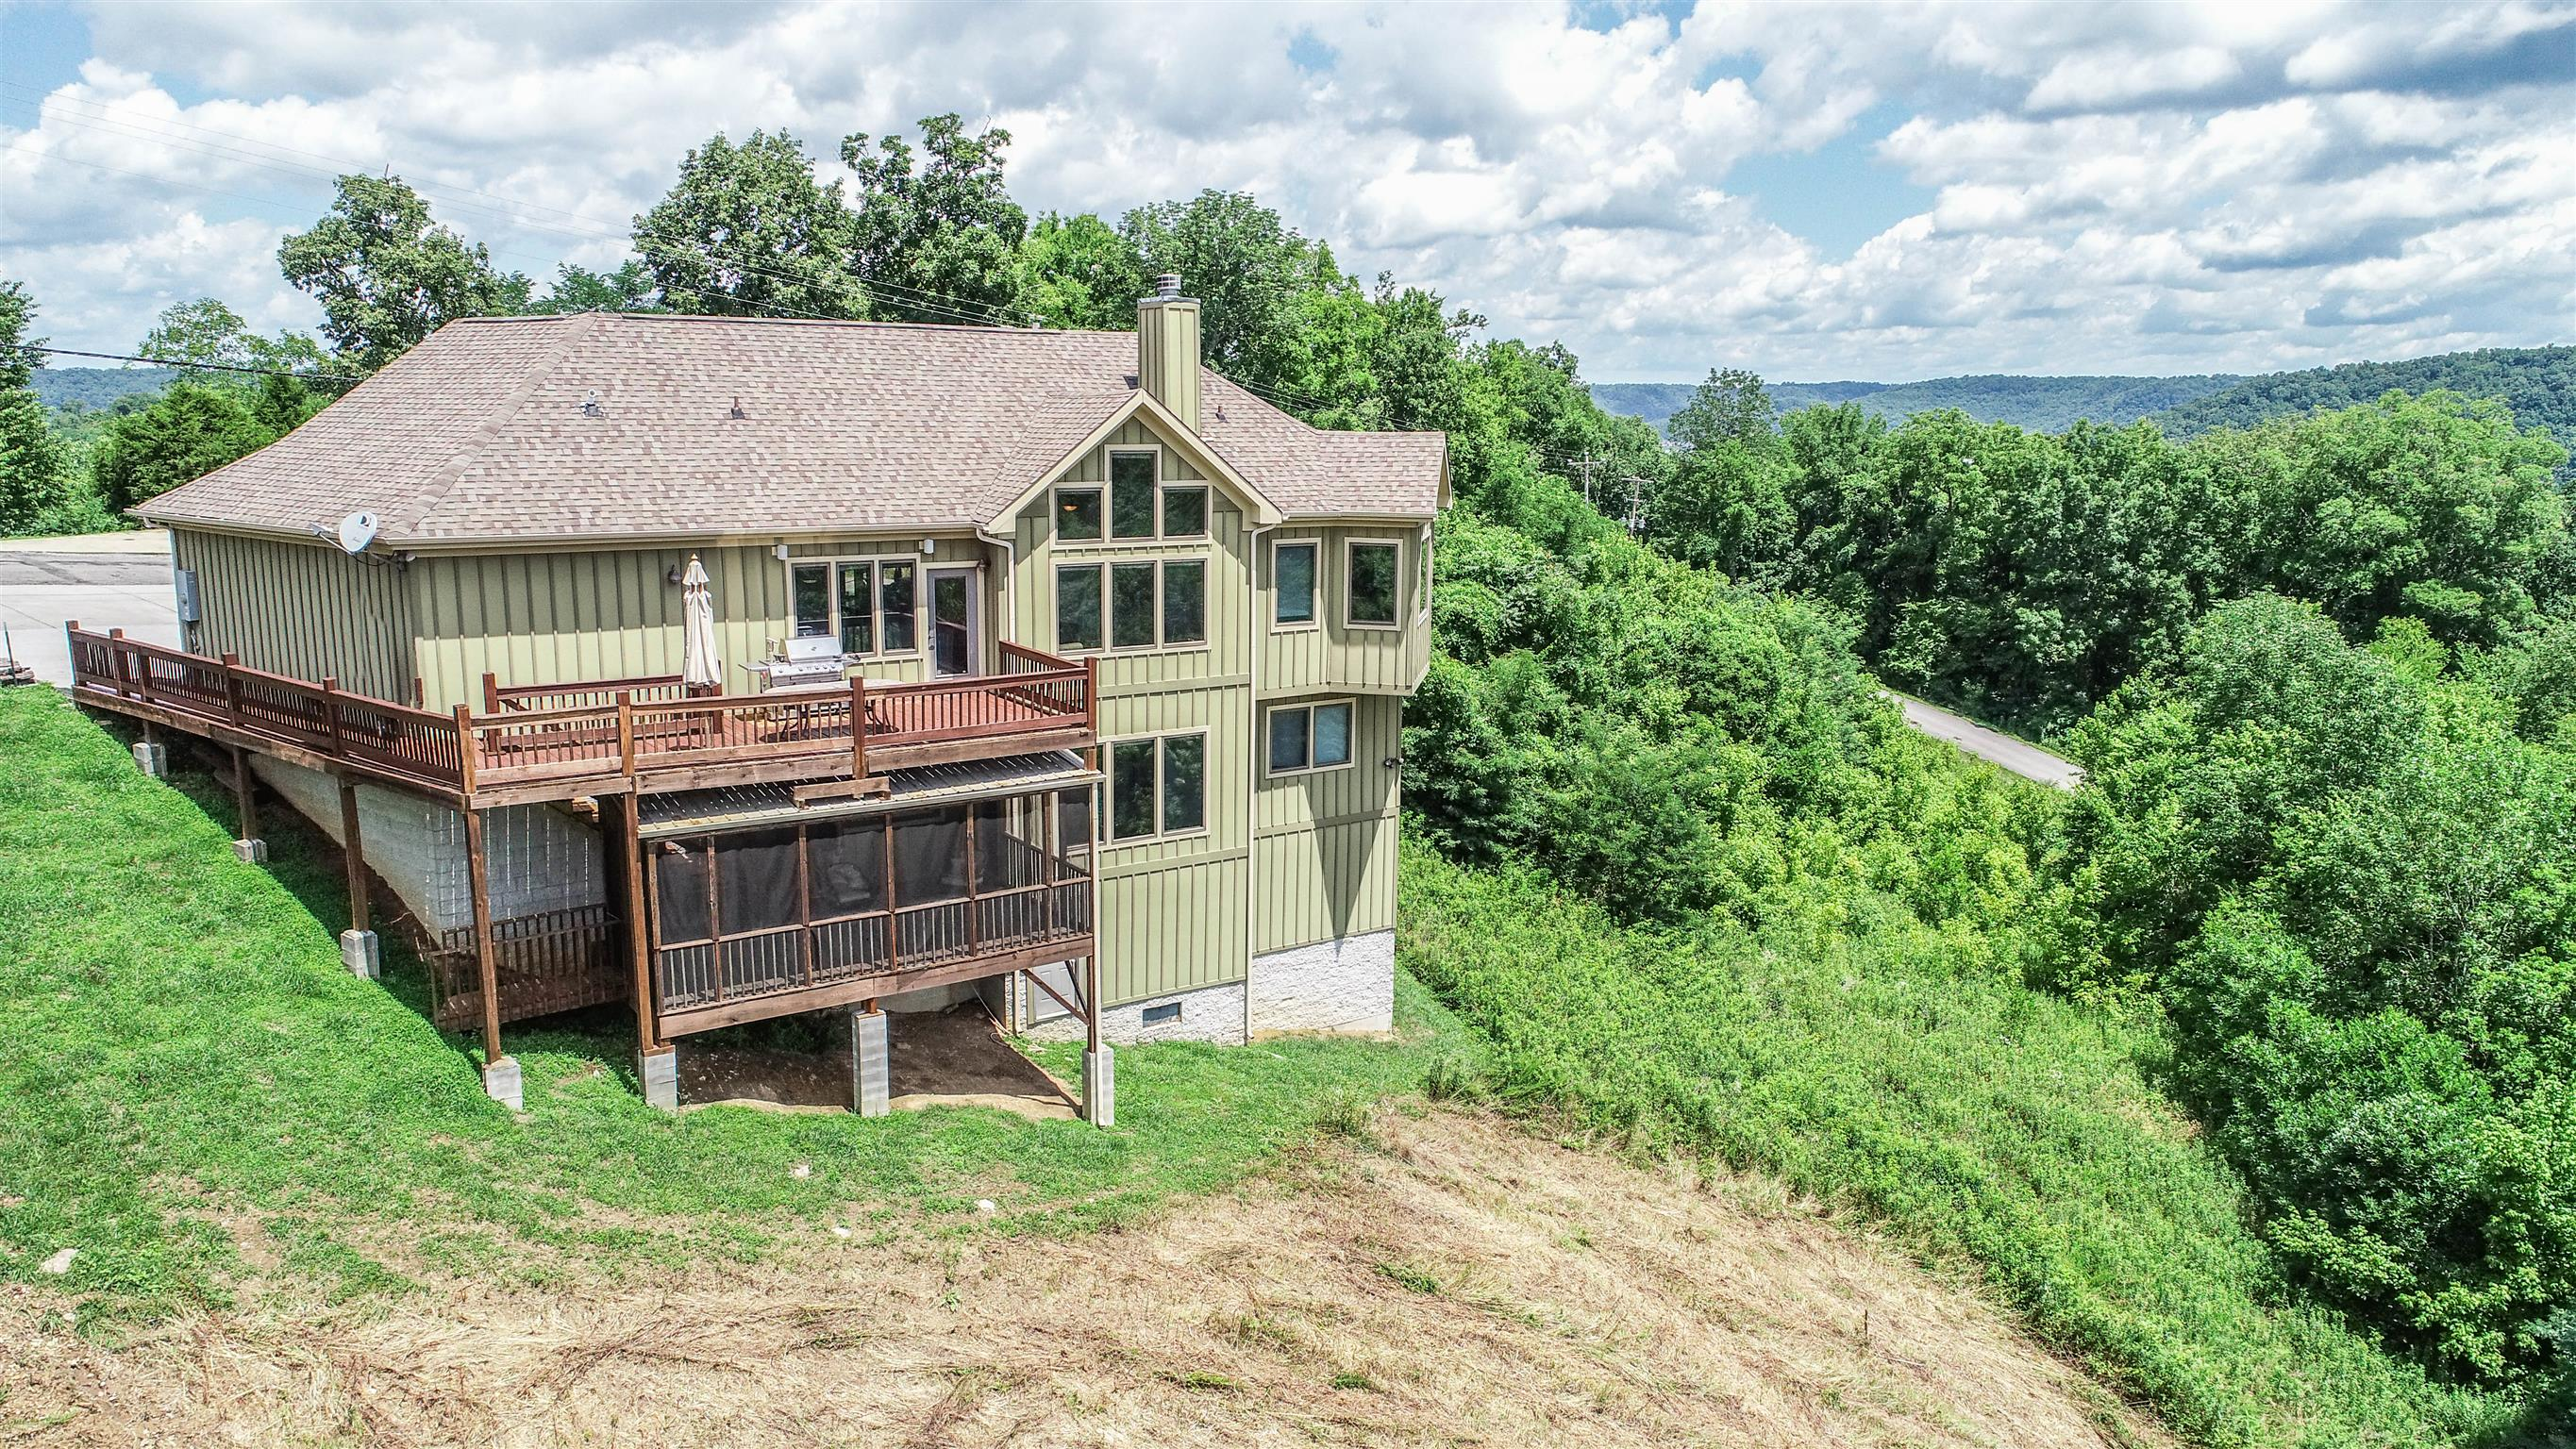 5320 Coconut Ridge Rd, Smithville, TN 37166 - Smithville, TN real estate listing